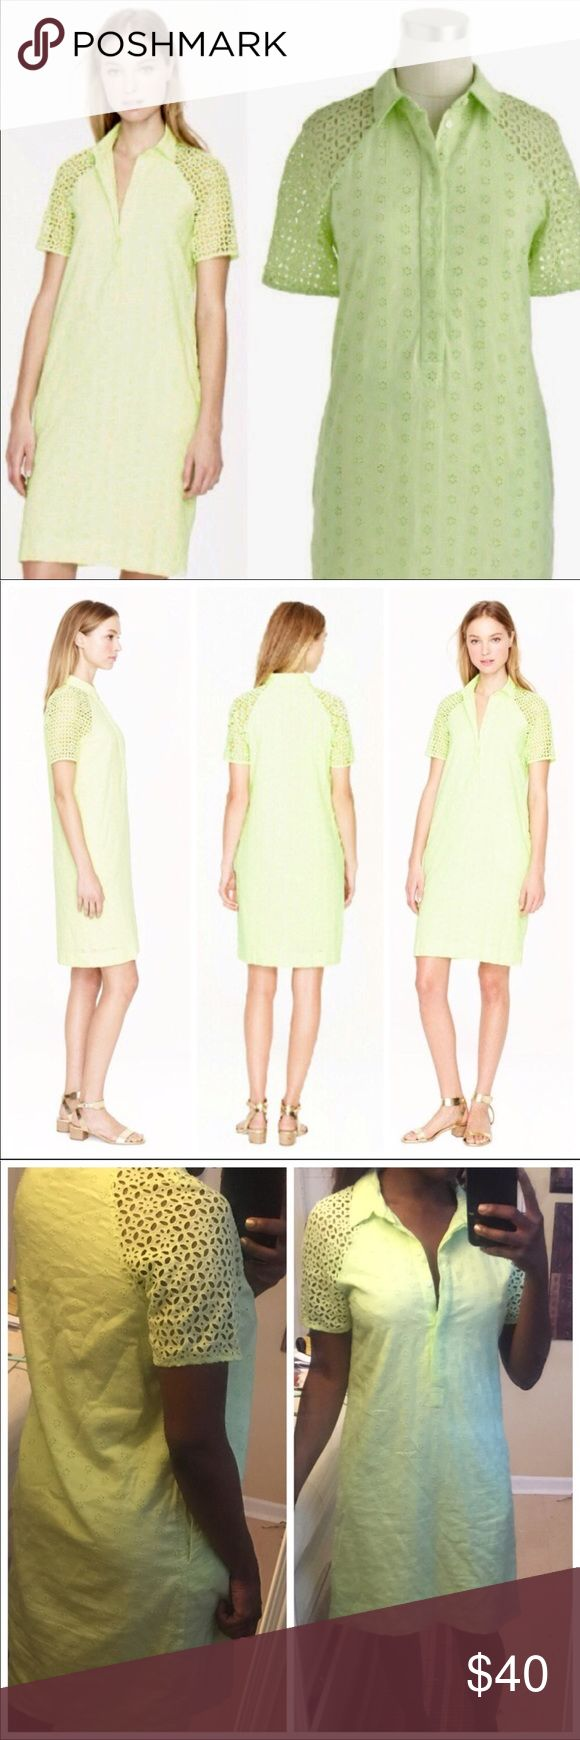 J. Crew Eyelet Shift Dress Eyelet button down collared dress from j crew. Short sleeves. Shift style. Light neon green. Falls just above the knee. Very unique, fun style.   🌸 zara 🌸 asos 🌸 free people 🌸 reformation 🌸 for love and lemons 🌸 self portrait 🌸 anthropologie J. Crew Dresses